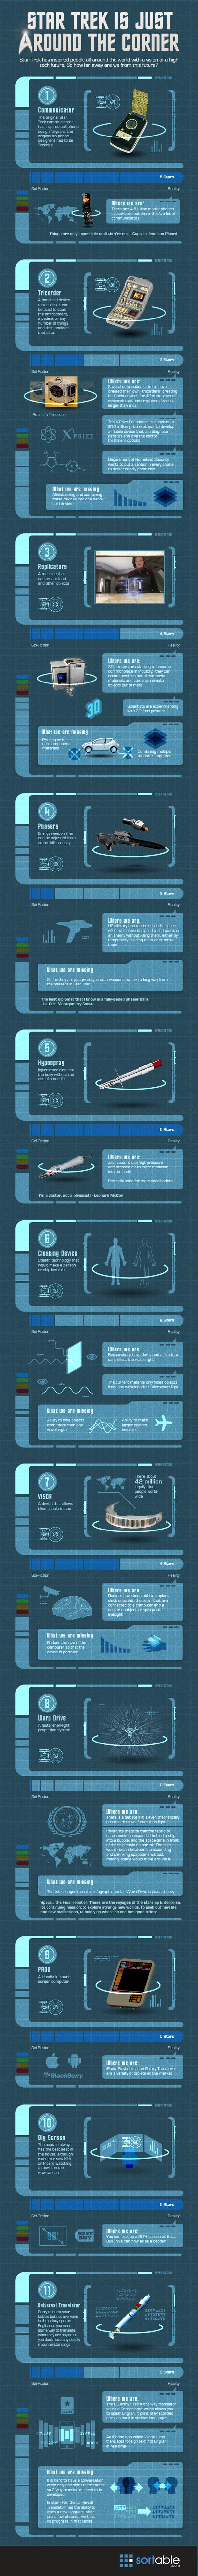 Star Trek is just around the corner resize - Star Trek, sicence-fiction ou science tout court? [Infographique]